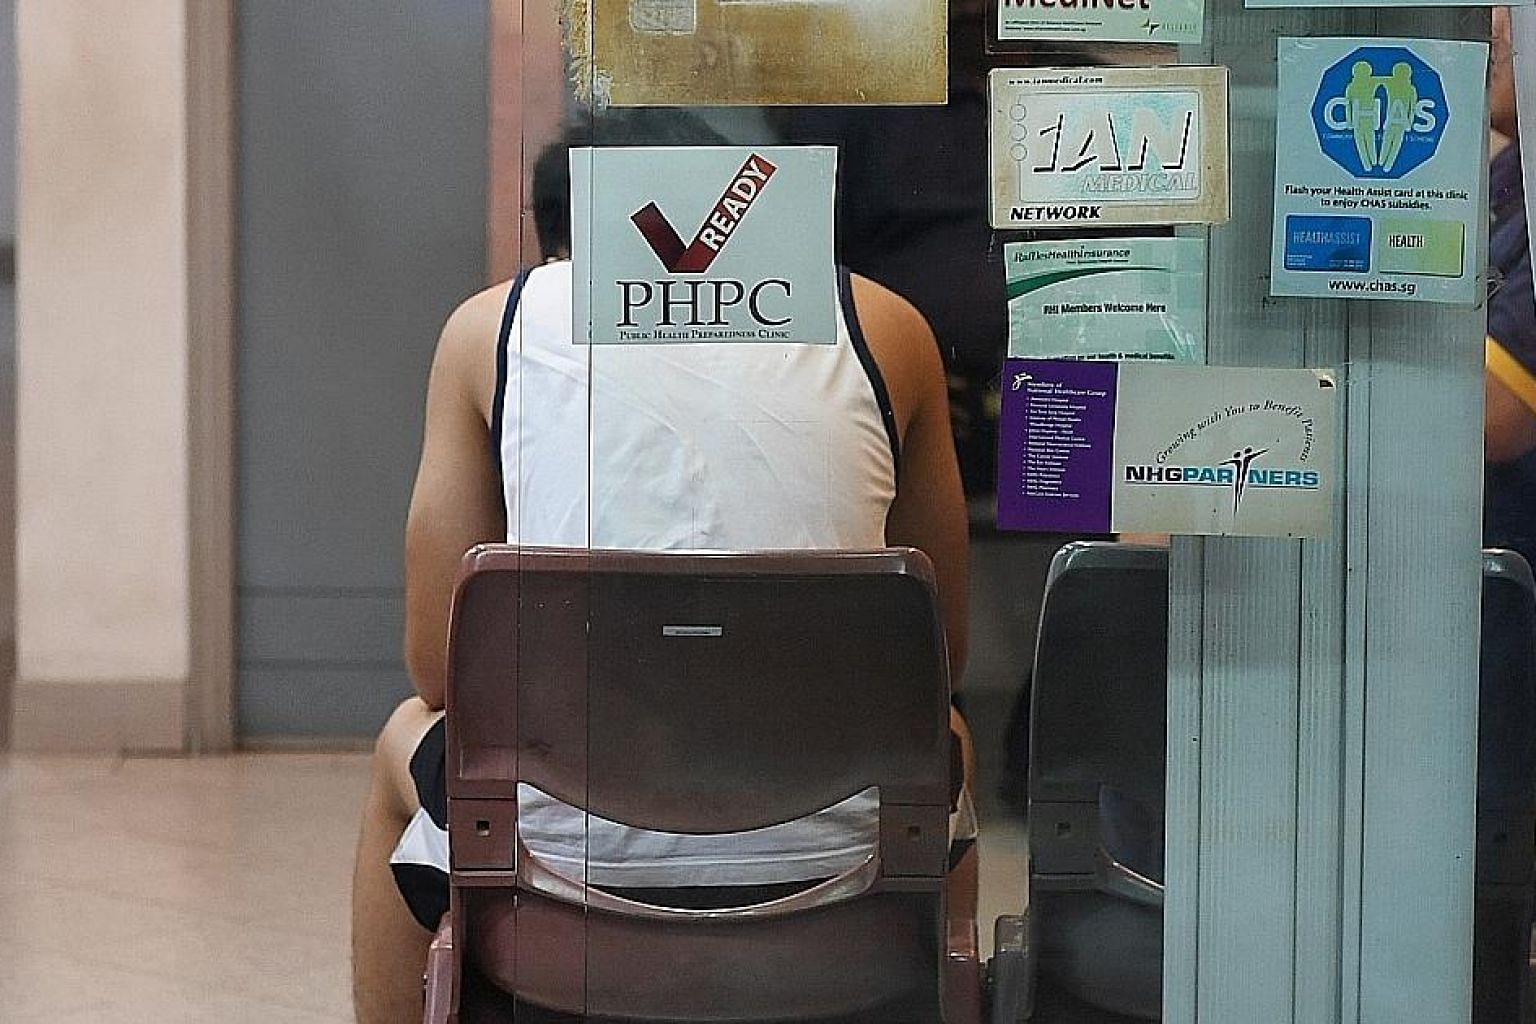 A clinic with a decal indicating that it is part of the network of Public Health Preparedness Clinics (PHPCs), which will provide subsidised treatment to patients with respiratory symptoms.